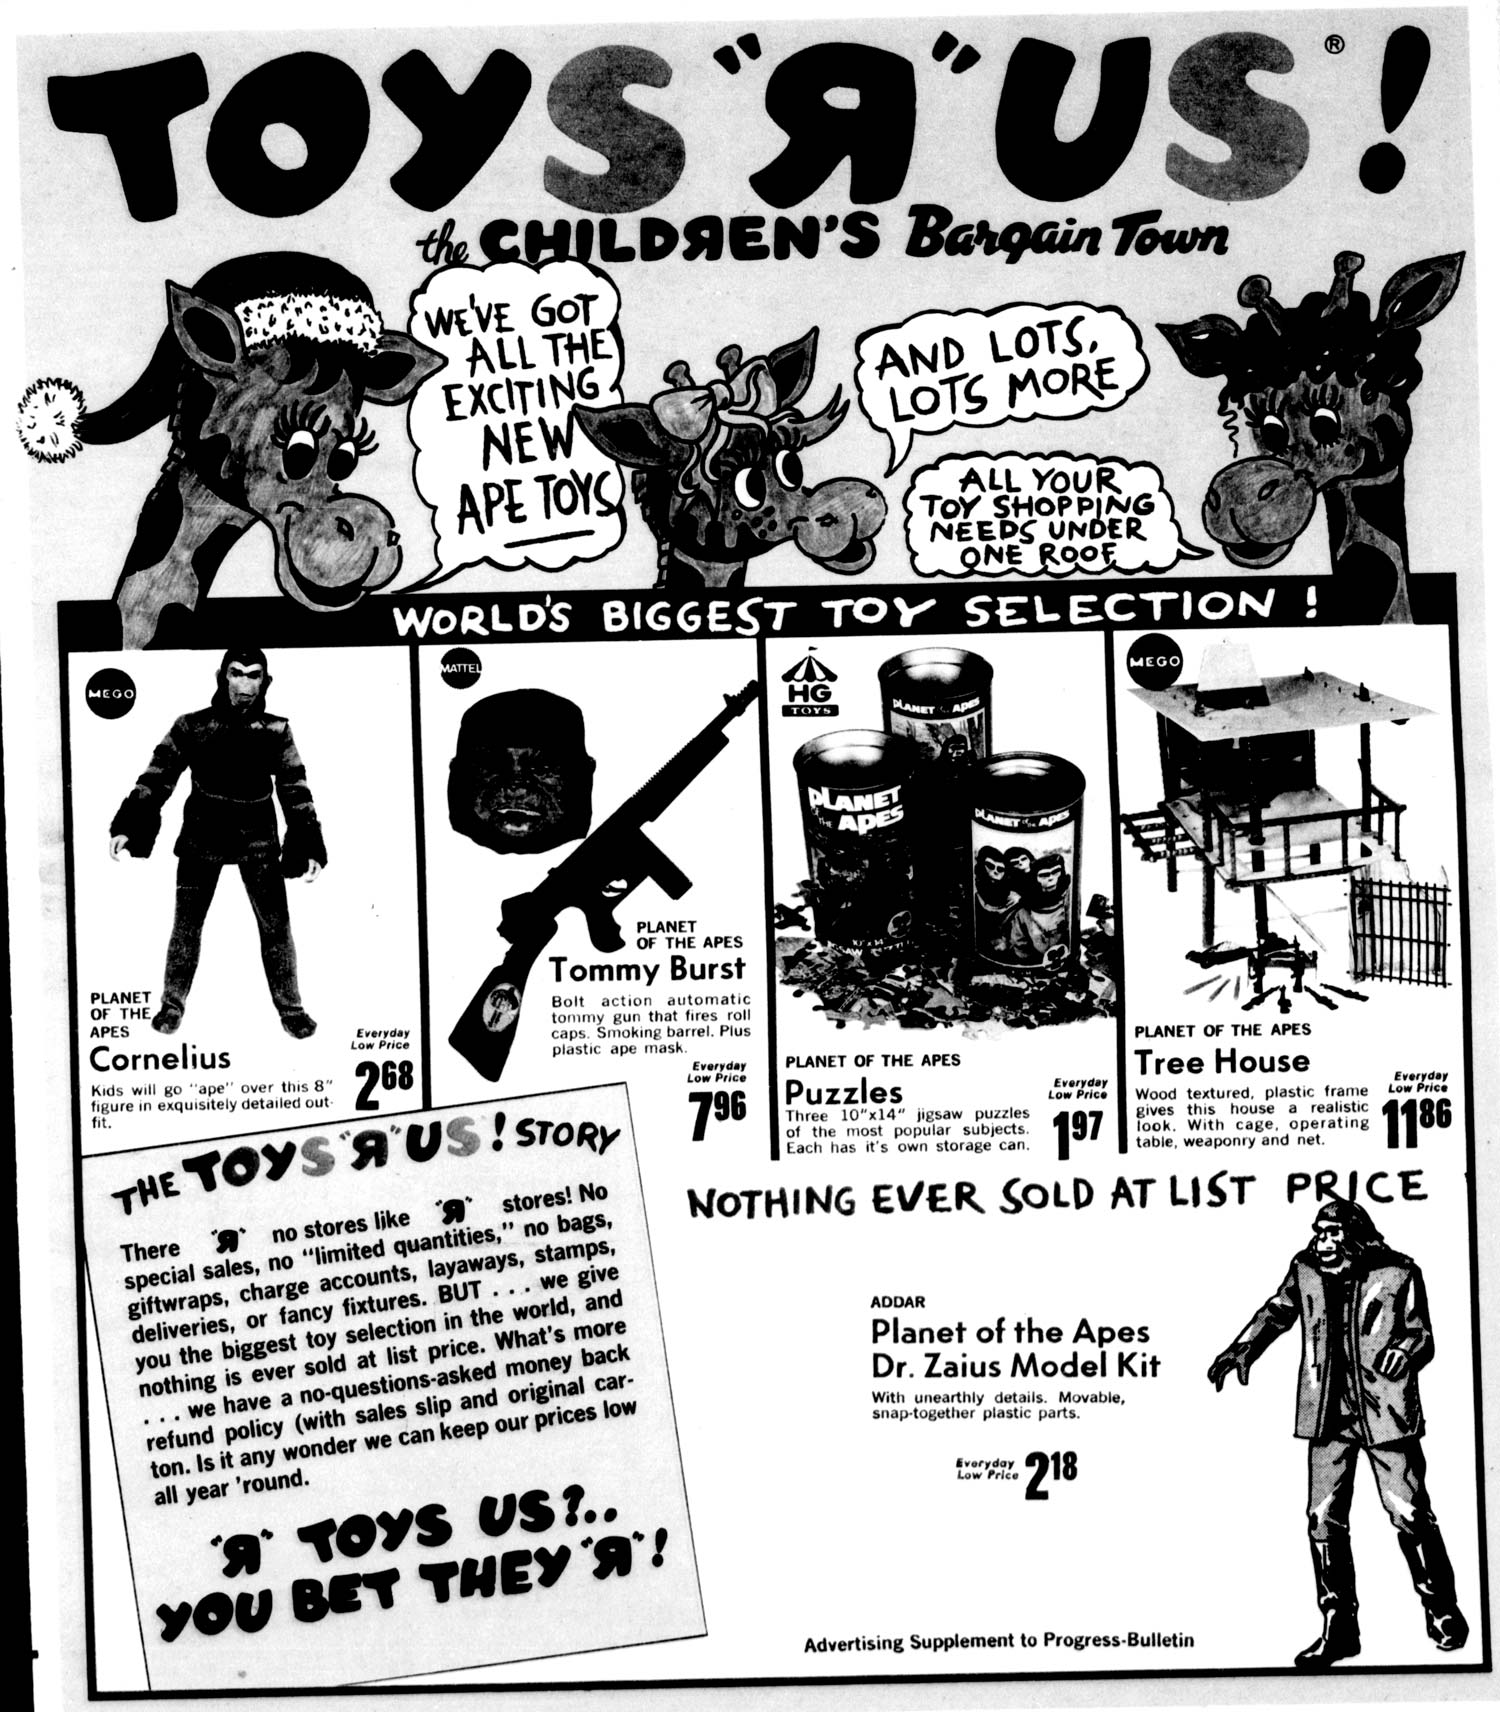 Planet Of The Apes Sale At Toys R Us Mego Museum - Museums for sale in us